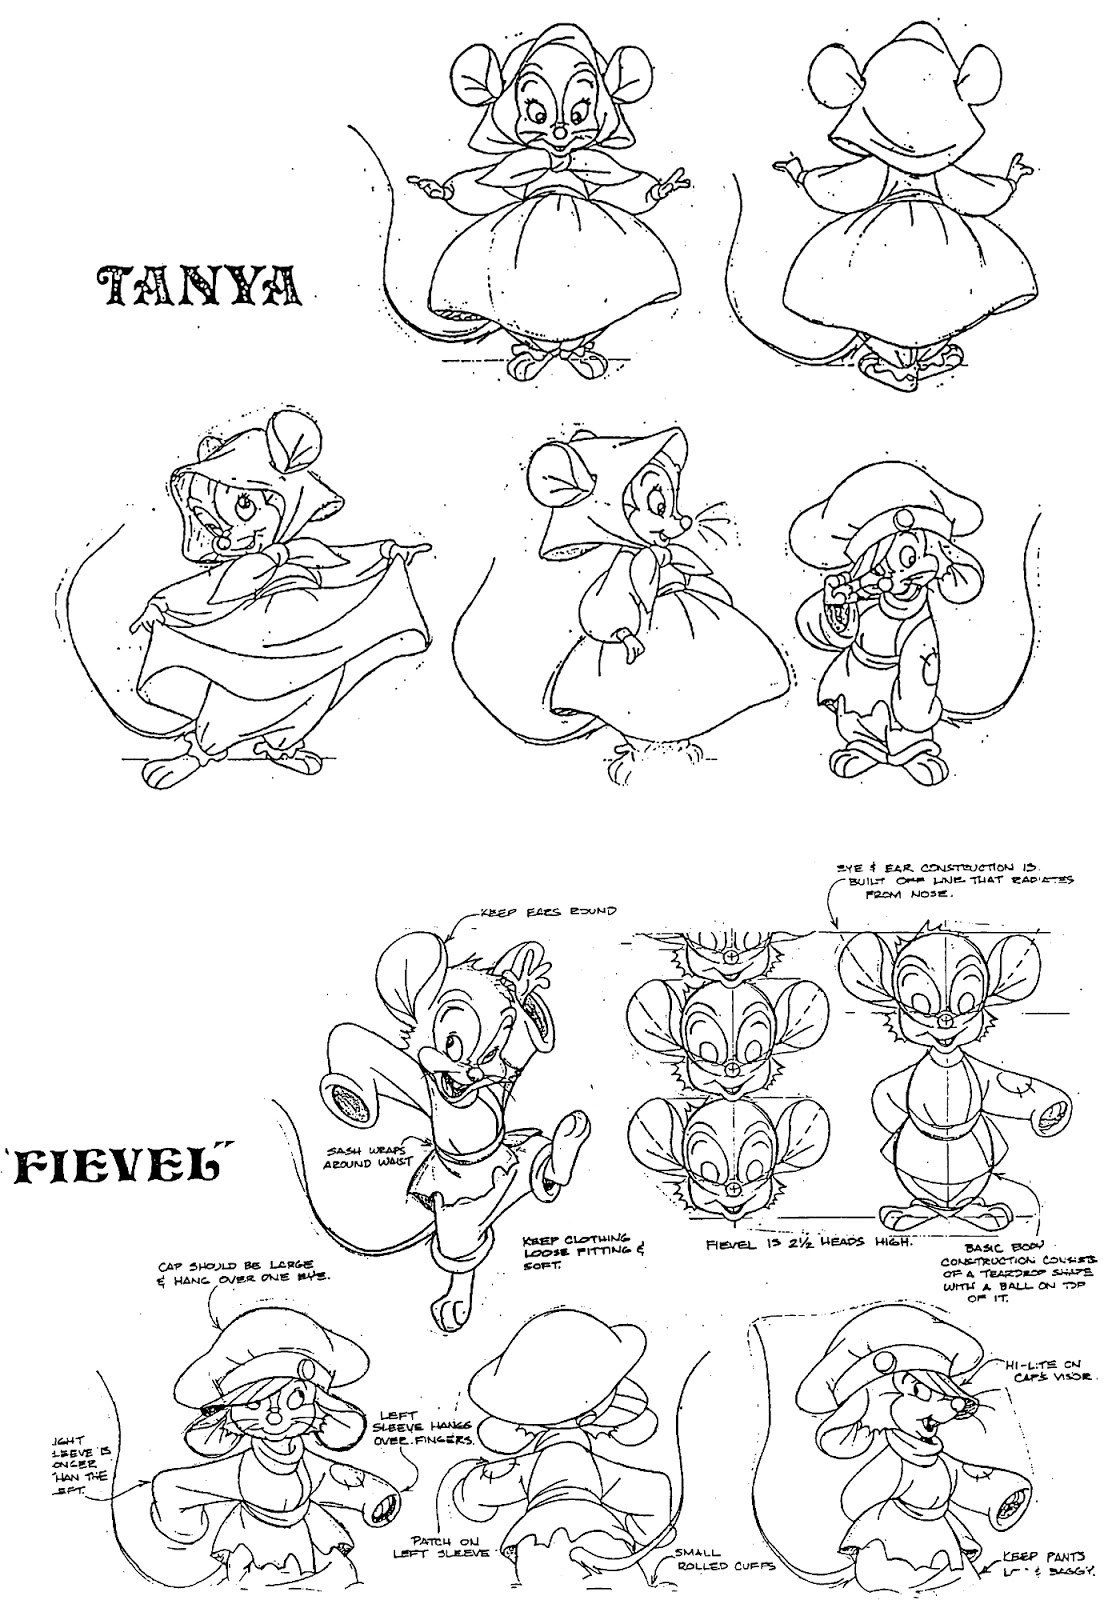 CrE@TiVe Di$nEY F@N$: Some more model sheets of an